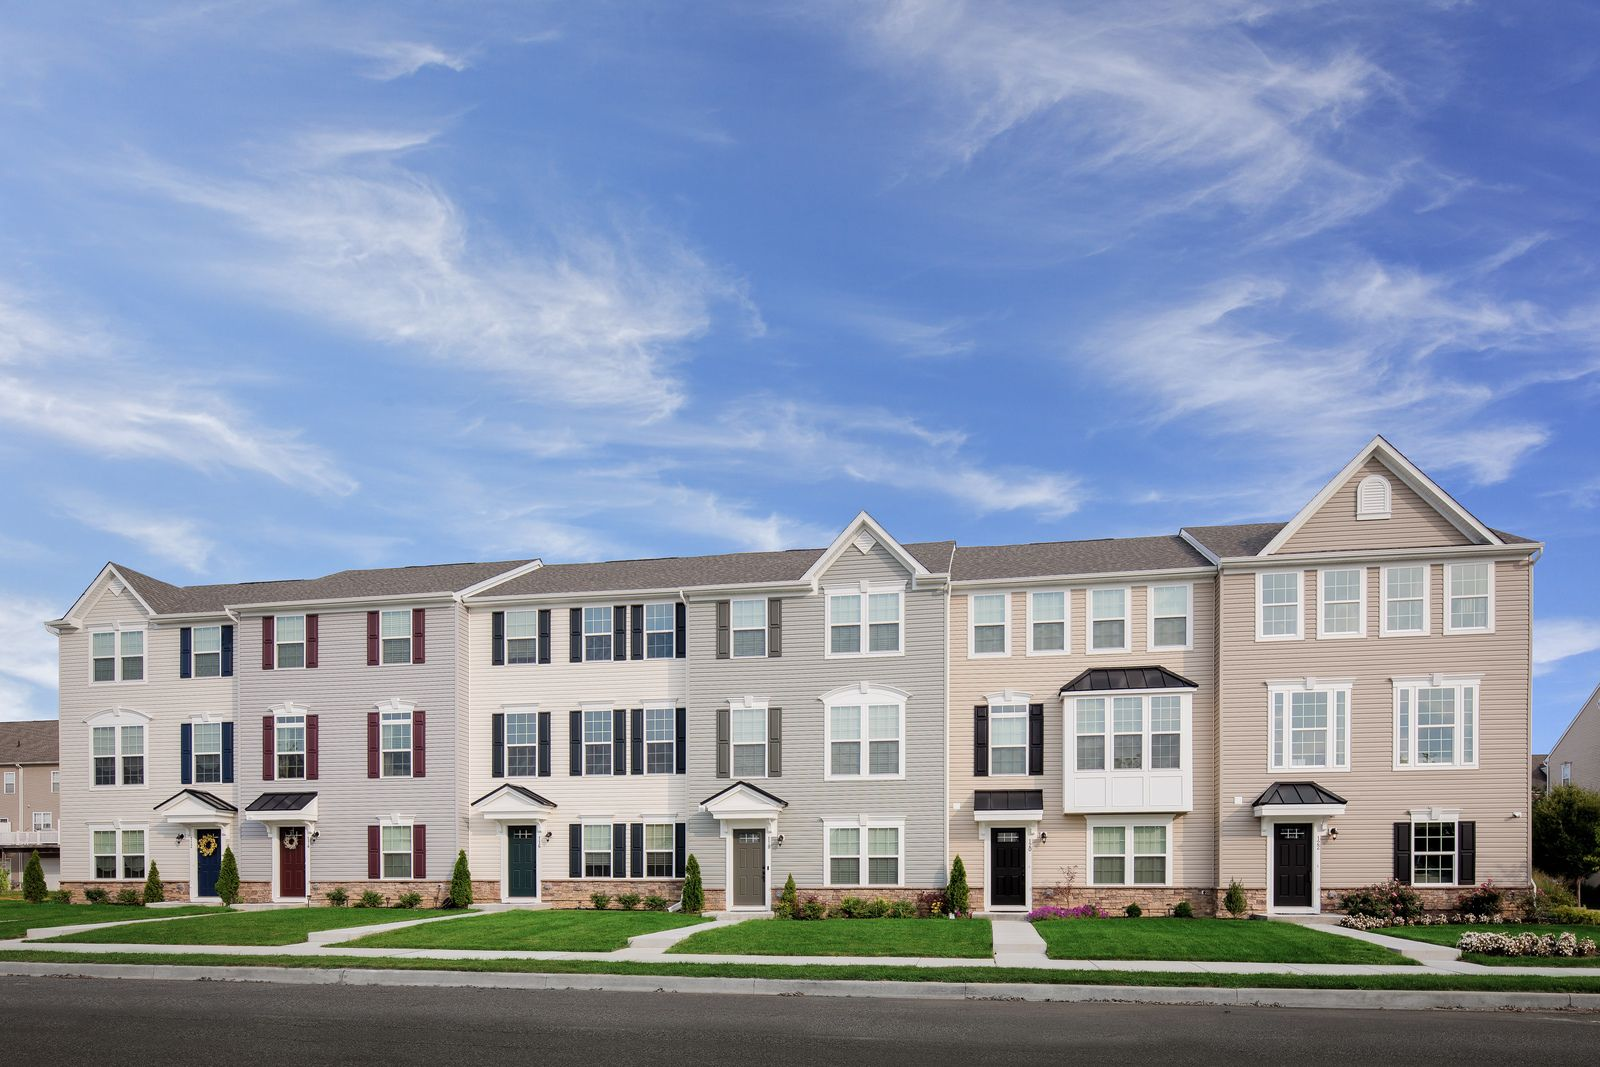 WELCOME TO CHESTNUT HILL PRESERVE TOWNHOMES:Own a luxury 2-car garage townhome with a finished lower level, designer kitchen, and 10' x 20' deck in a convenient Newark location near shopping, dining, and I-95.Schedule your visit today!